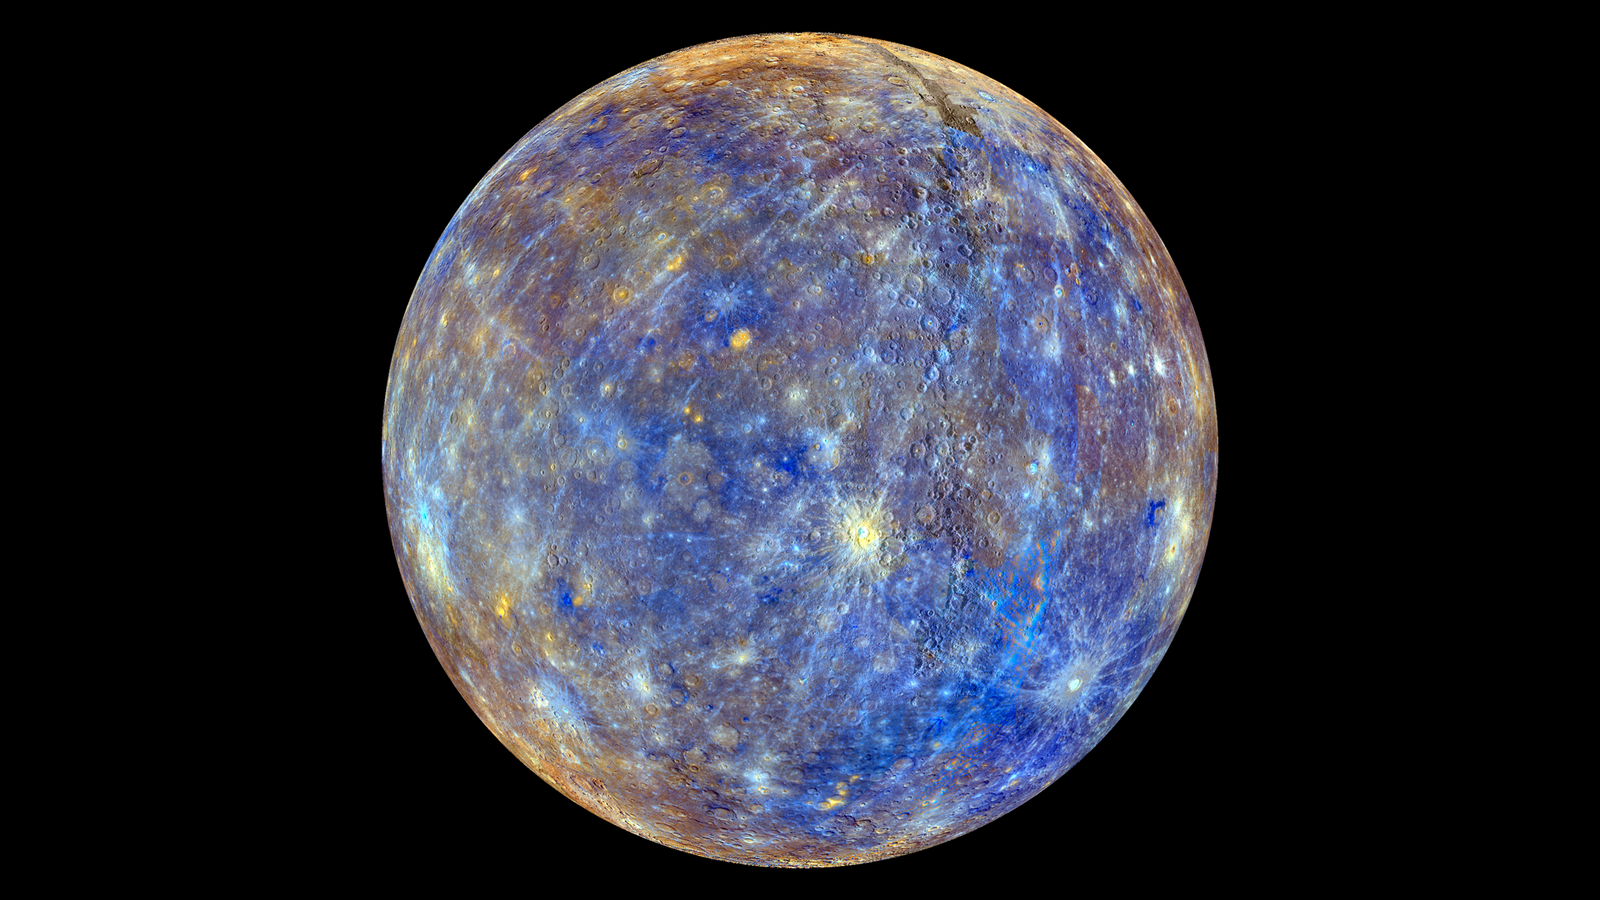 Mercury's Messy Surface May Have Once Had Crucial Ingredients for Life